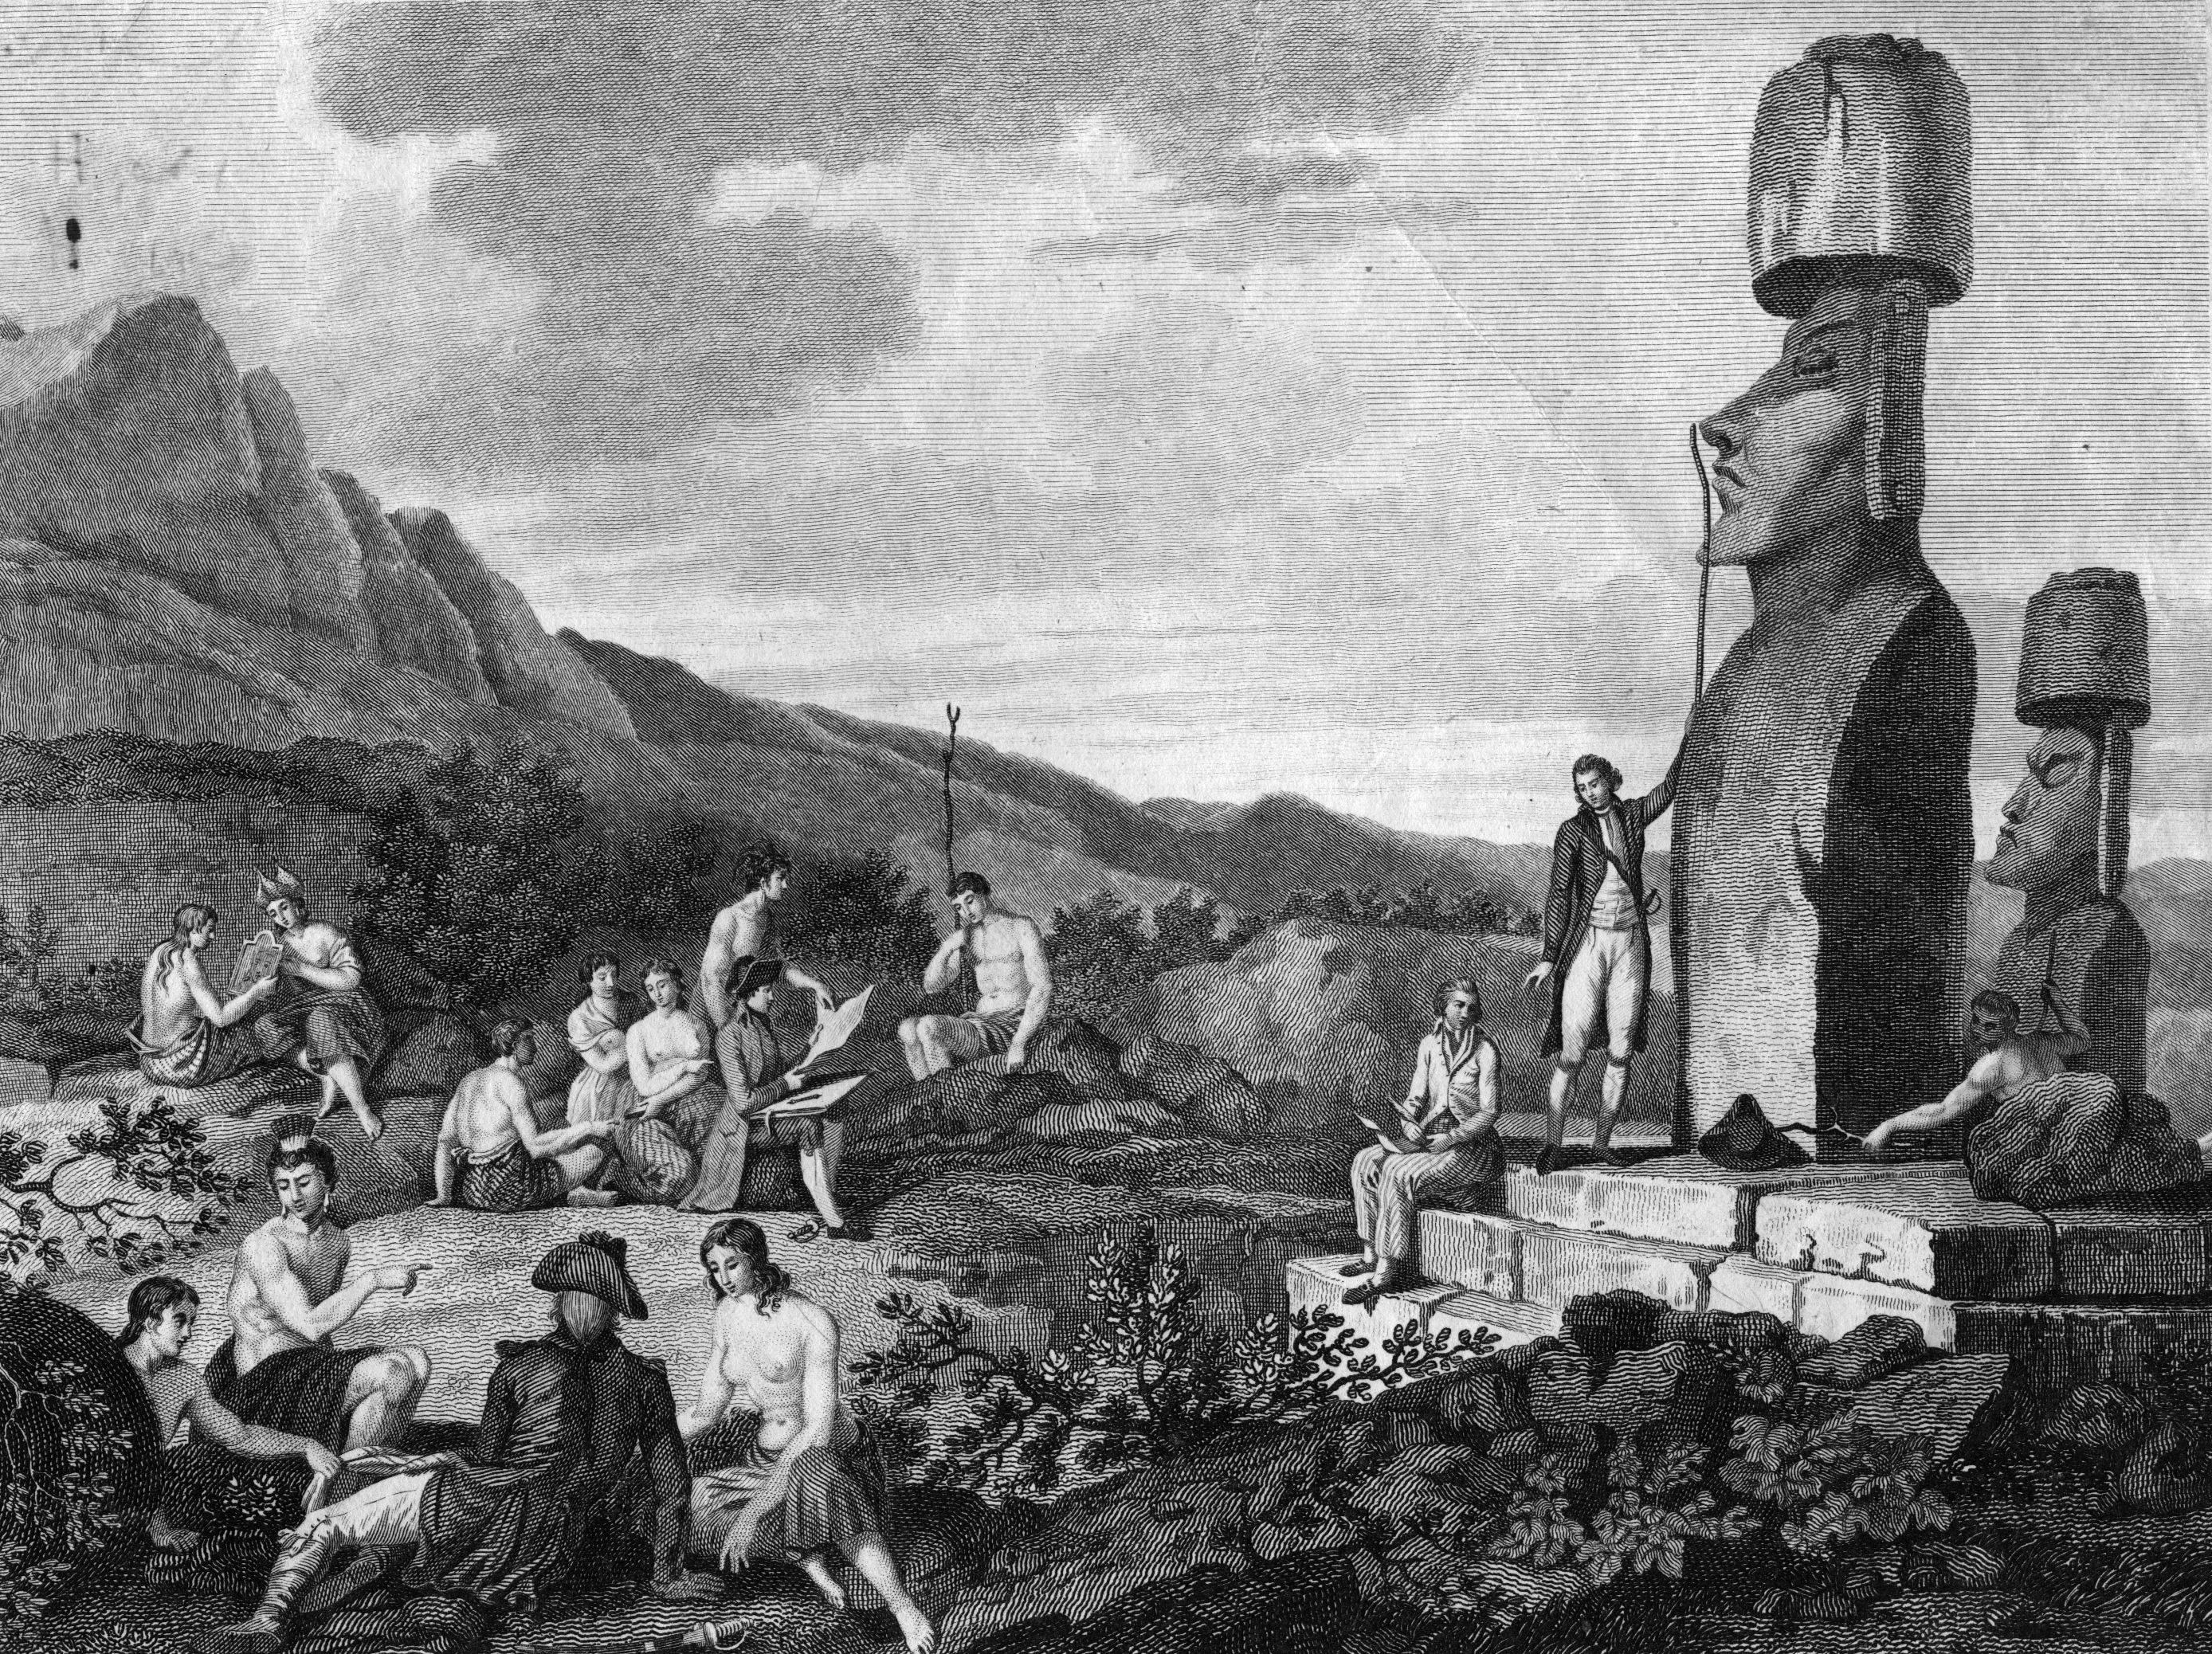 A black-and-white illustration shows a man measuring a large head statue as others lounge among rocks and bushes.